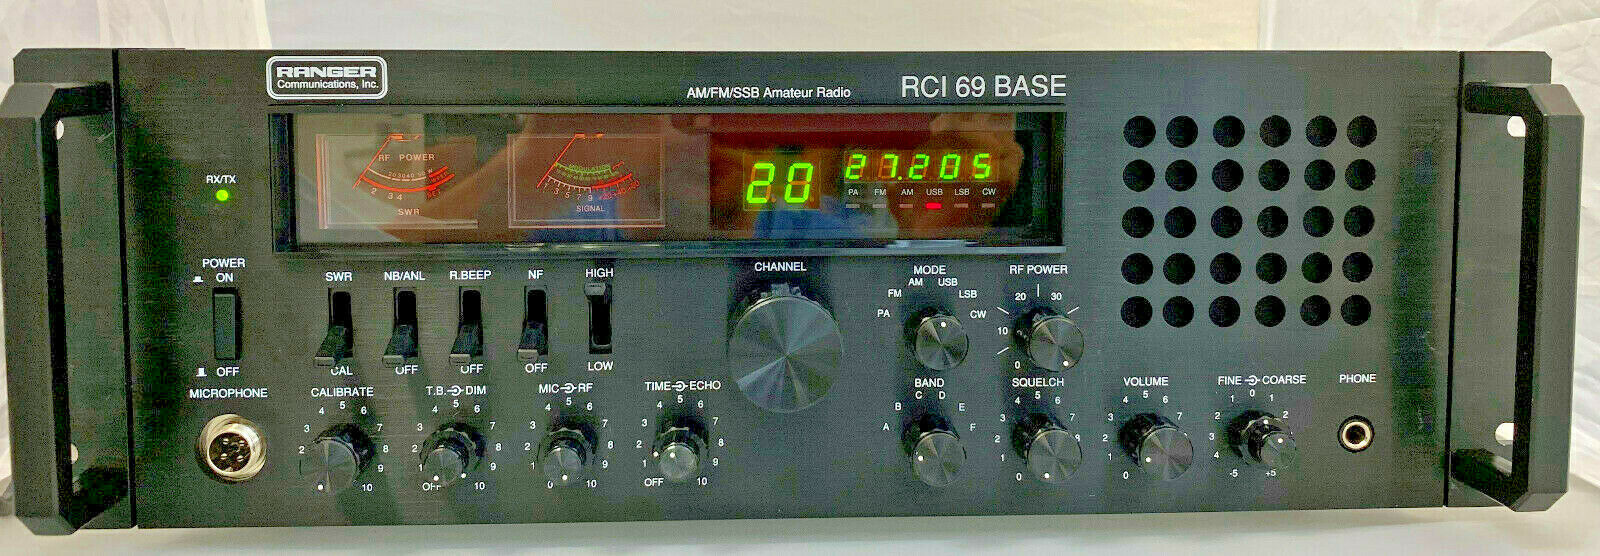 RCI-69 Base AM/FM/SSB/CW Station 10 Meter Amateur Radio AM/F